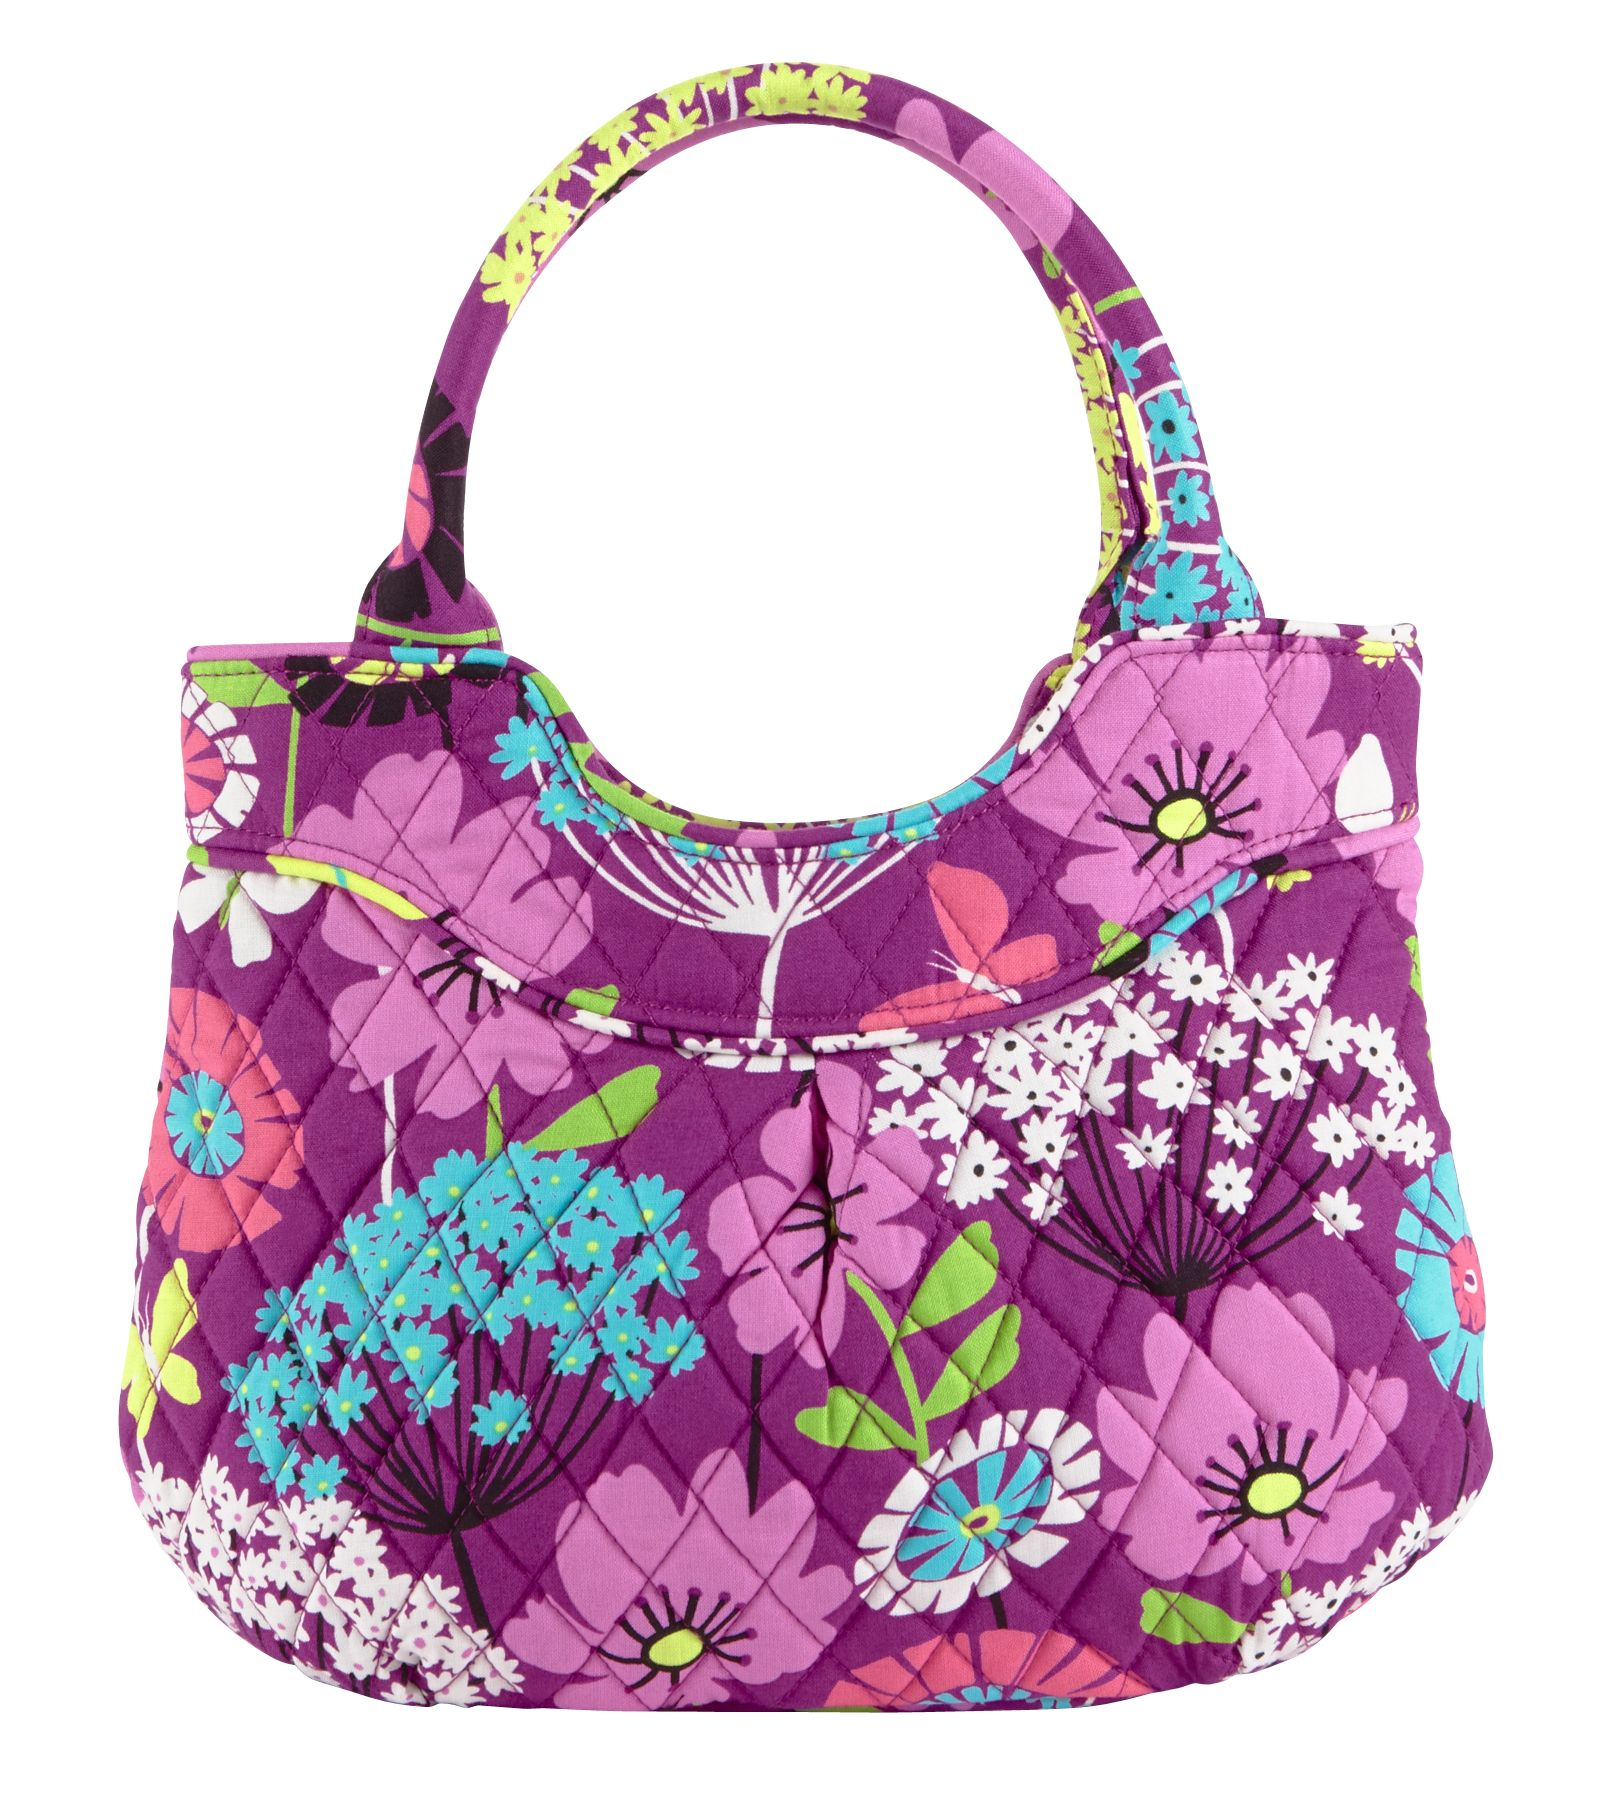 vera girls Vera bradley eyeglasses vera bradley is known for quilted bags in vibrant patterns now their line of accessories has grown to include cute vera bradley eyeglasses.